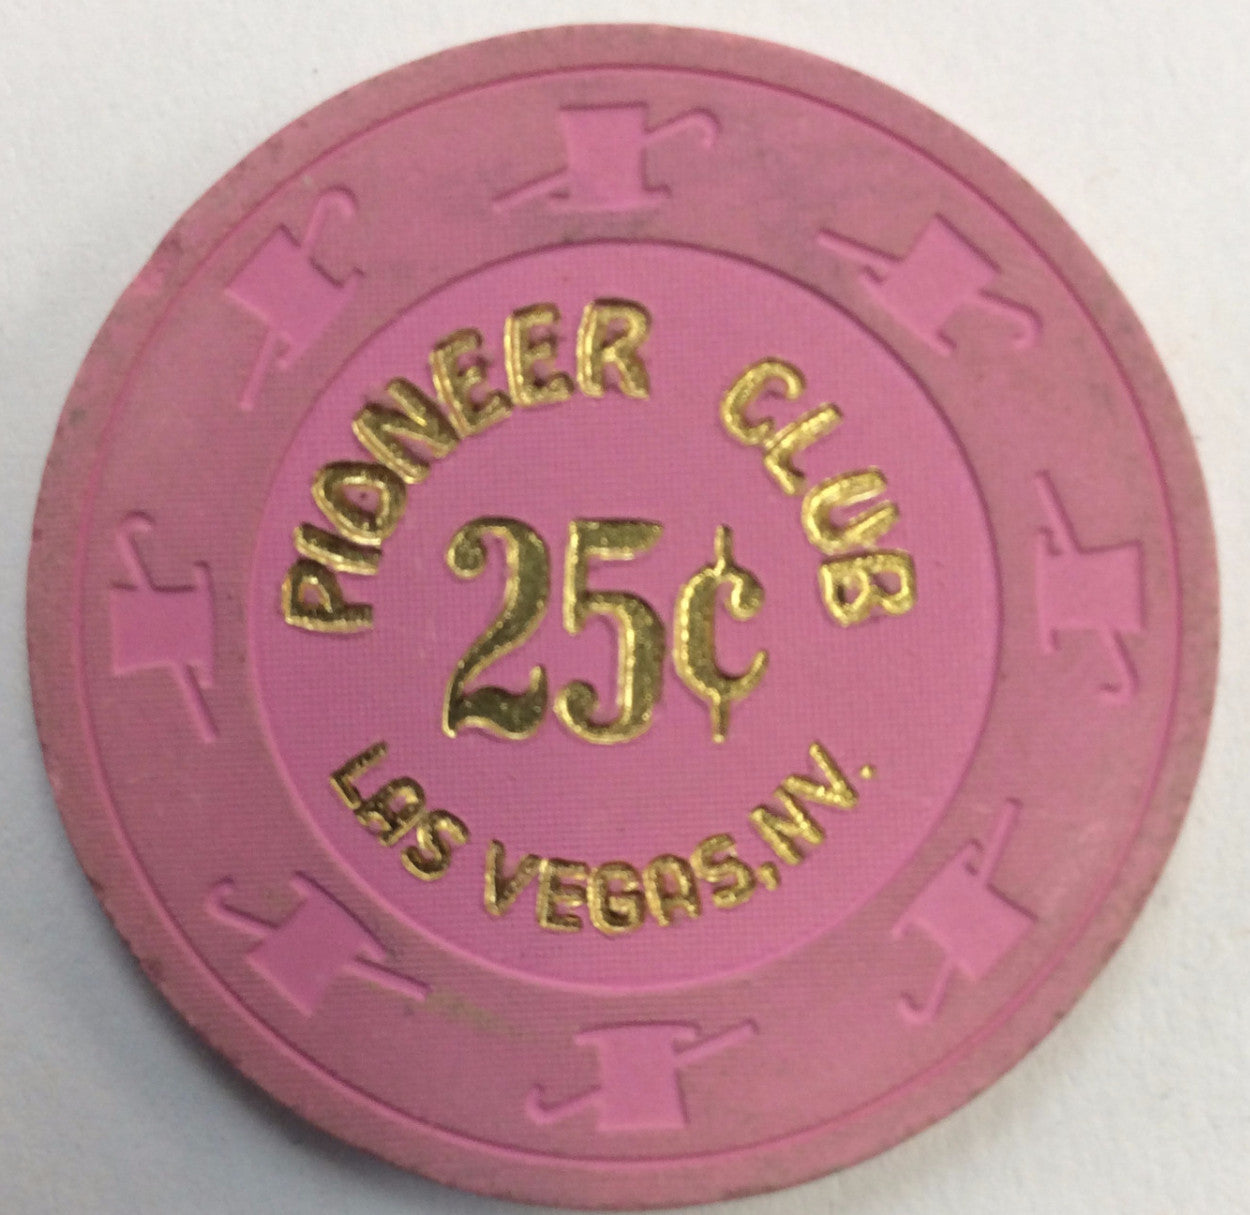 Pioneer Club Casino Las Vegas 25cent (pink) chip - Spinettis Gaming